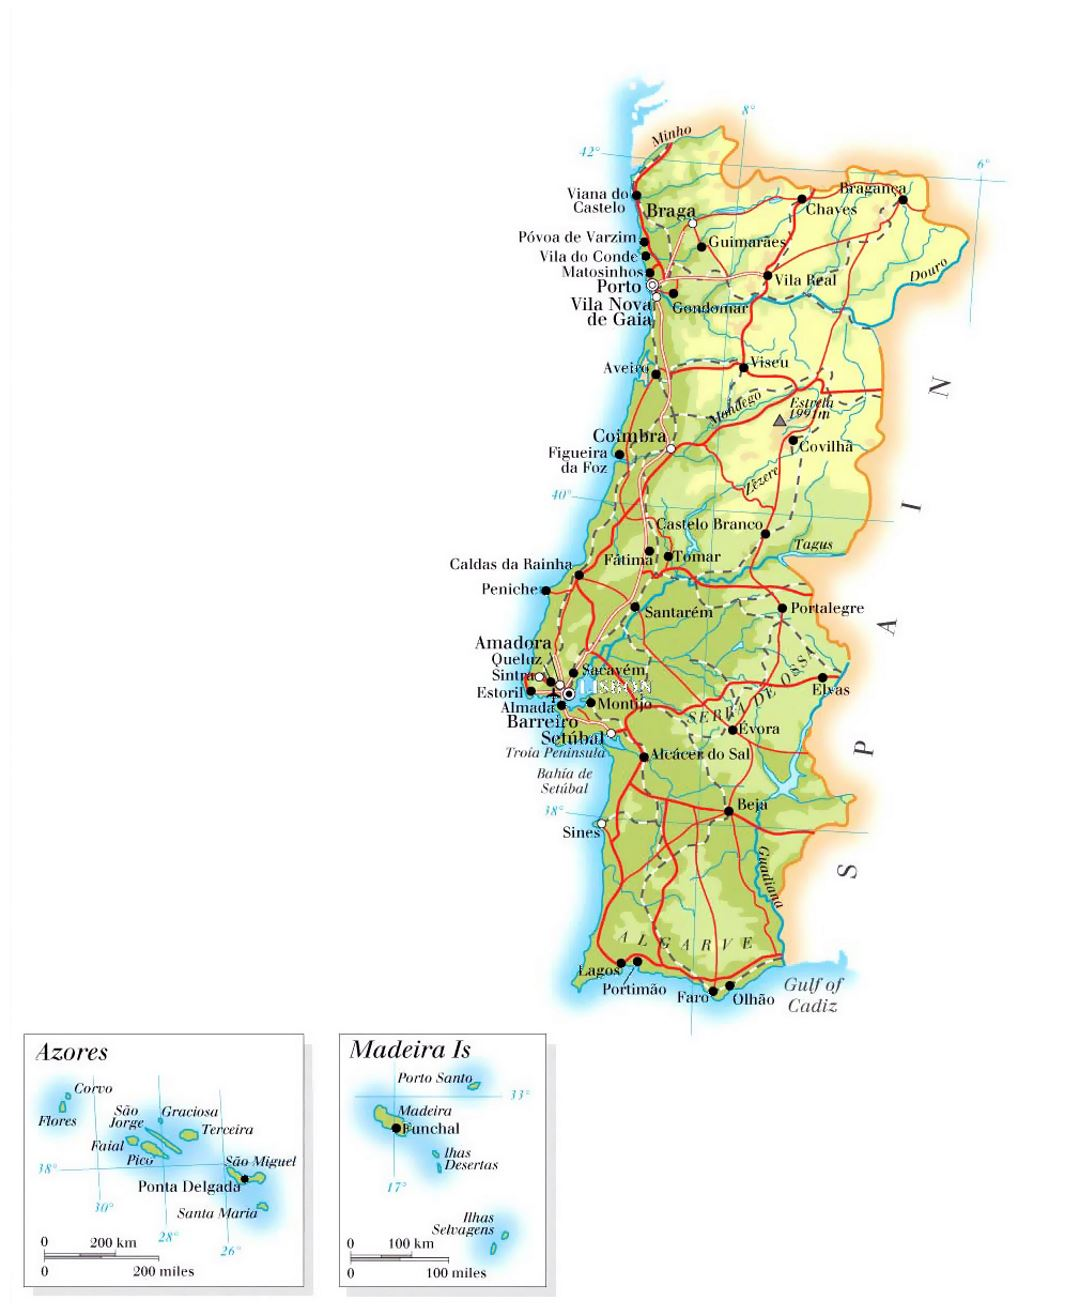 Large Elevation Map Of Portugal With Roads Cities And Airports - Portugal map airports